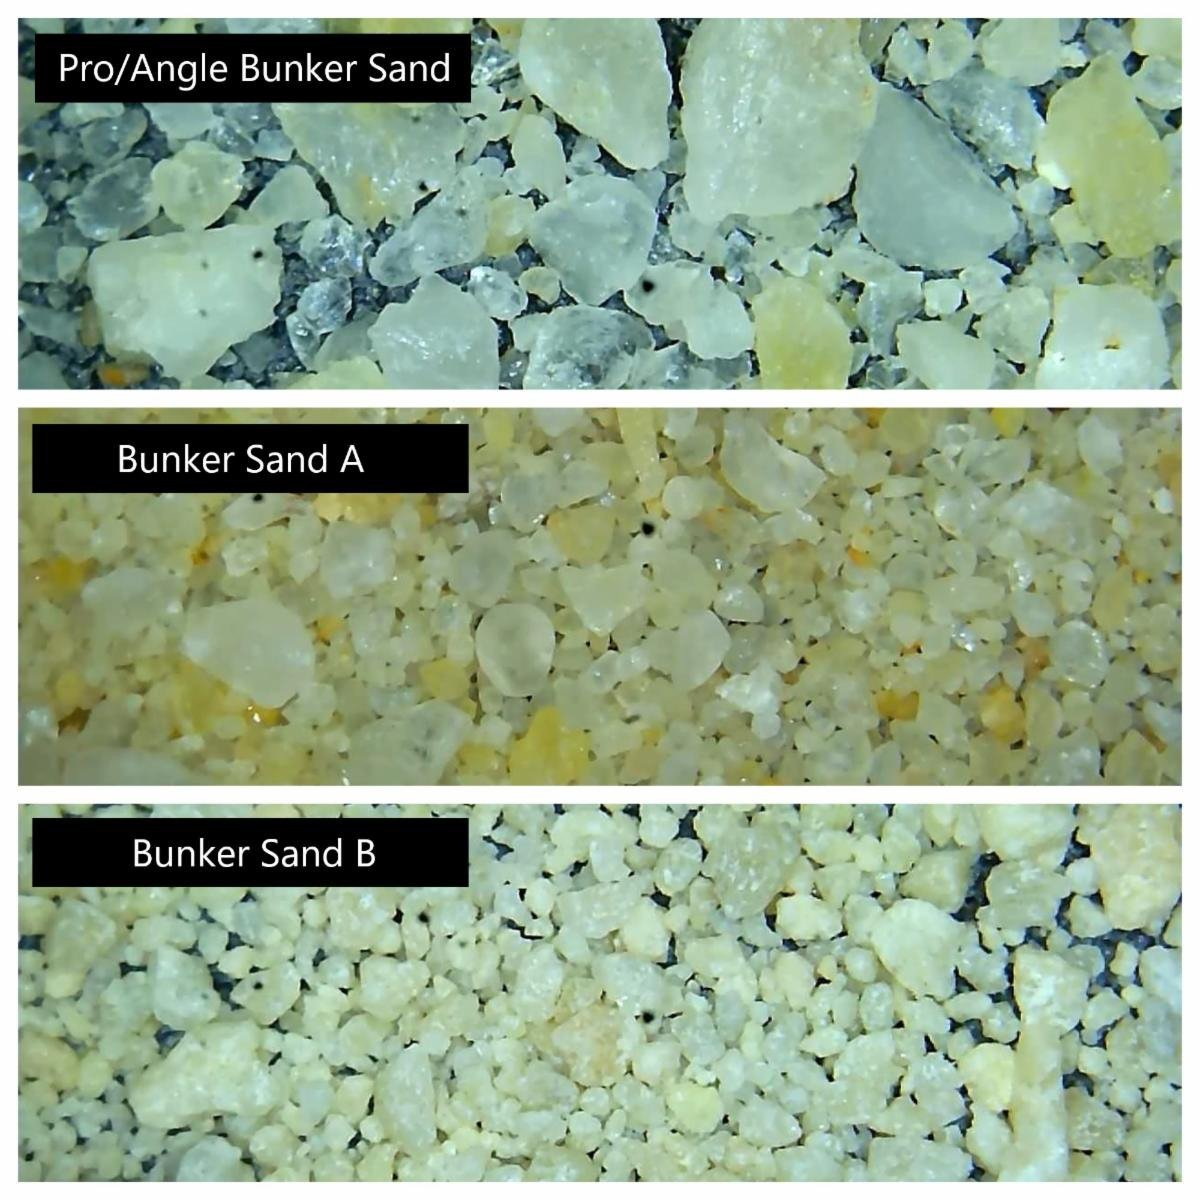 Shoreline Aggregate Pro/Angle Golf Course Bunker Sand Examples